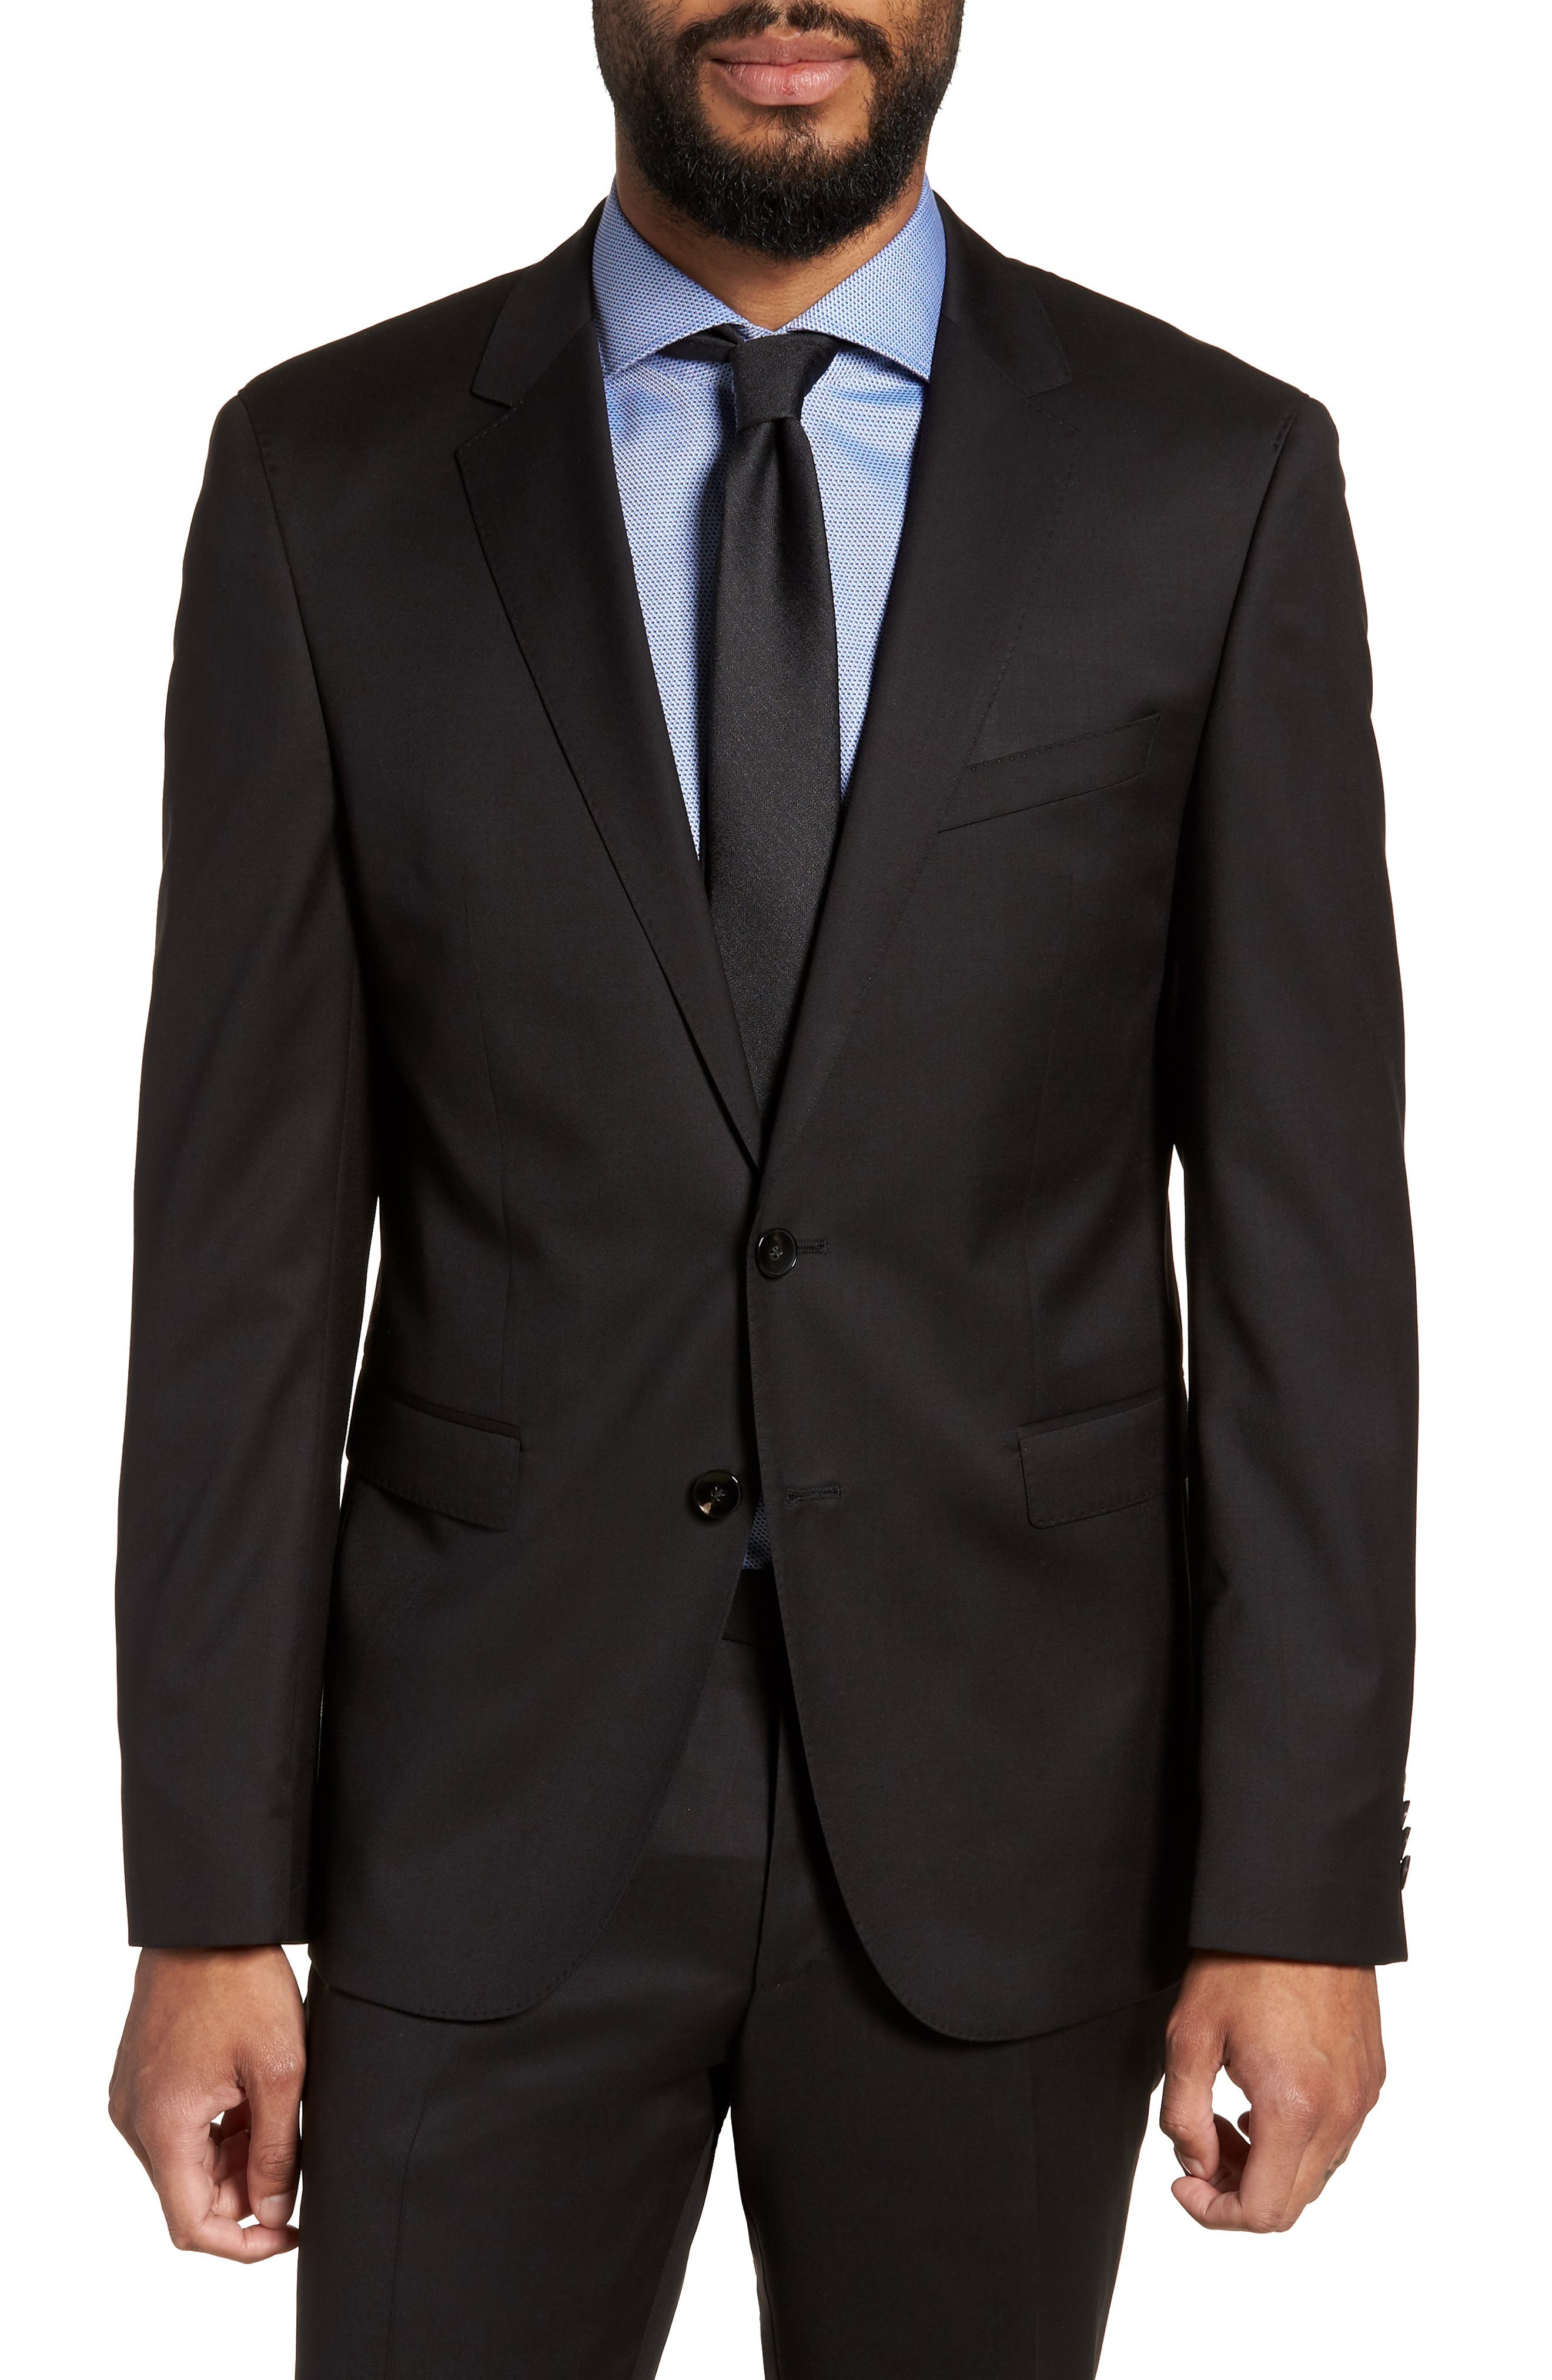 Ryan CYL Extra Trim Fit Solid Wool Blazer,                         Main,                         color, BLACK